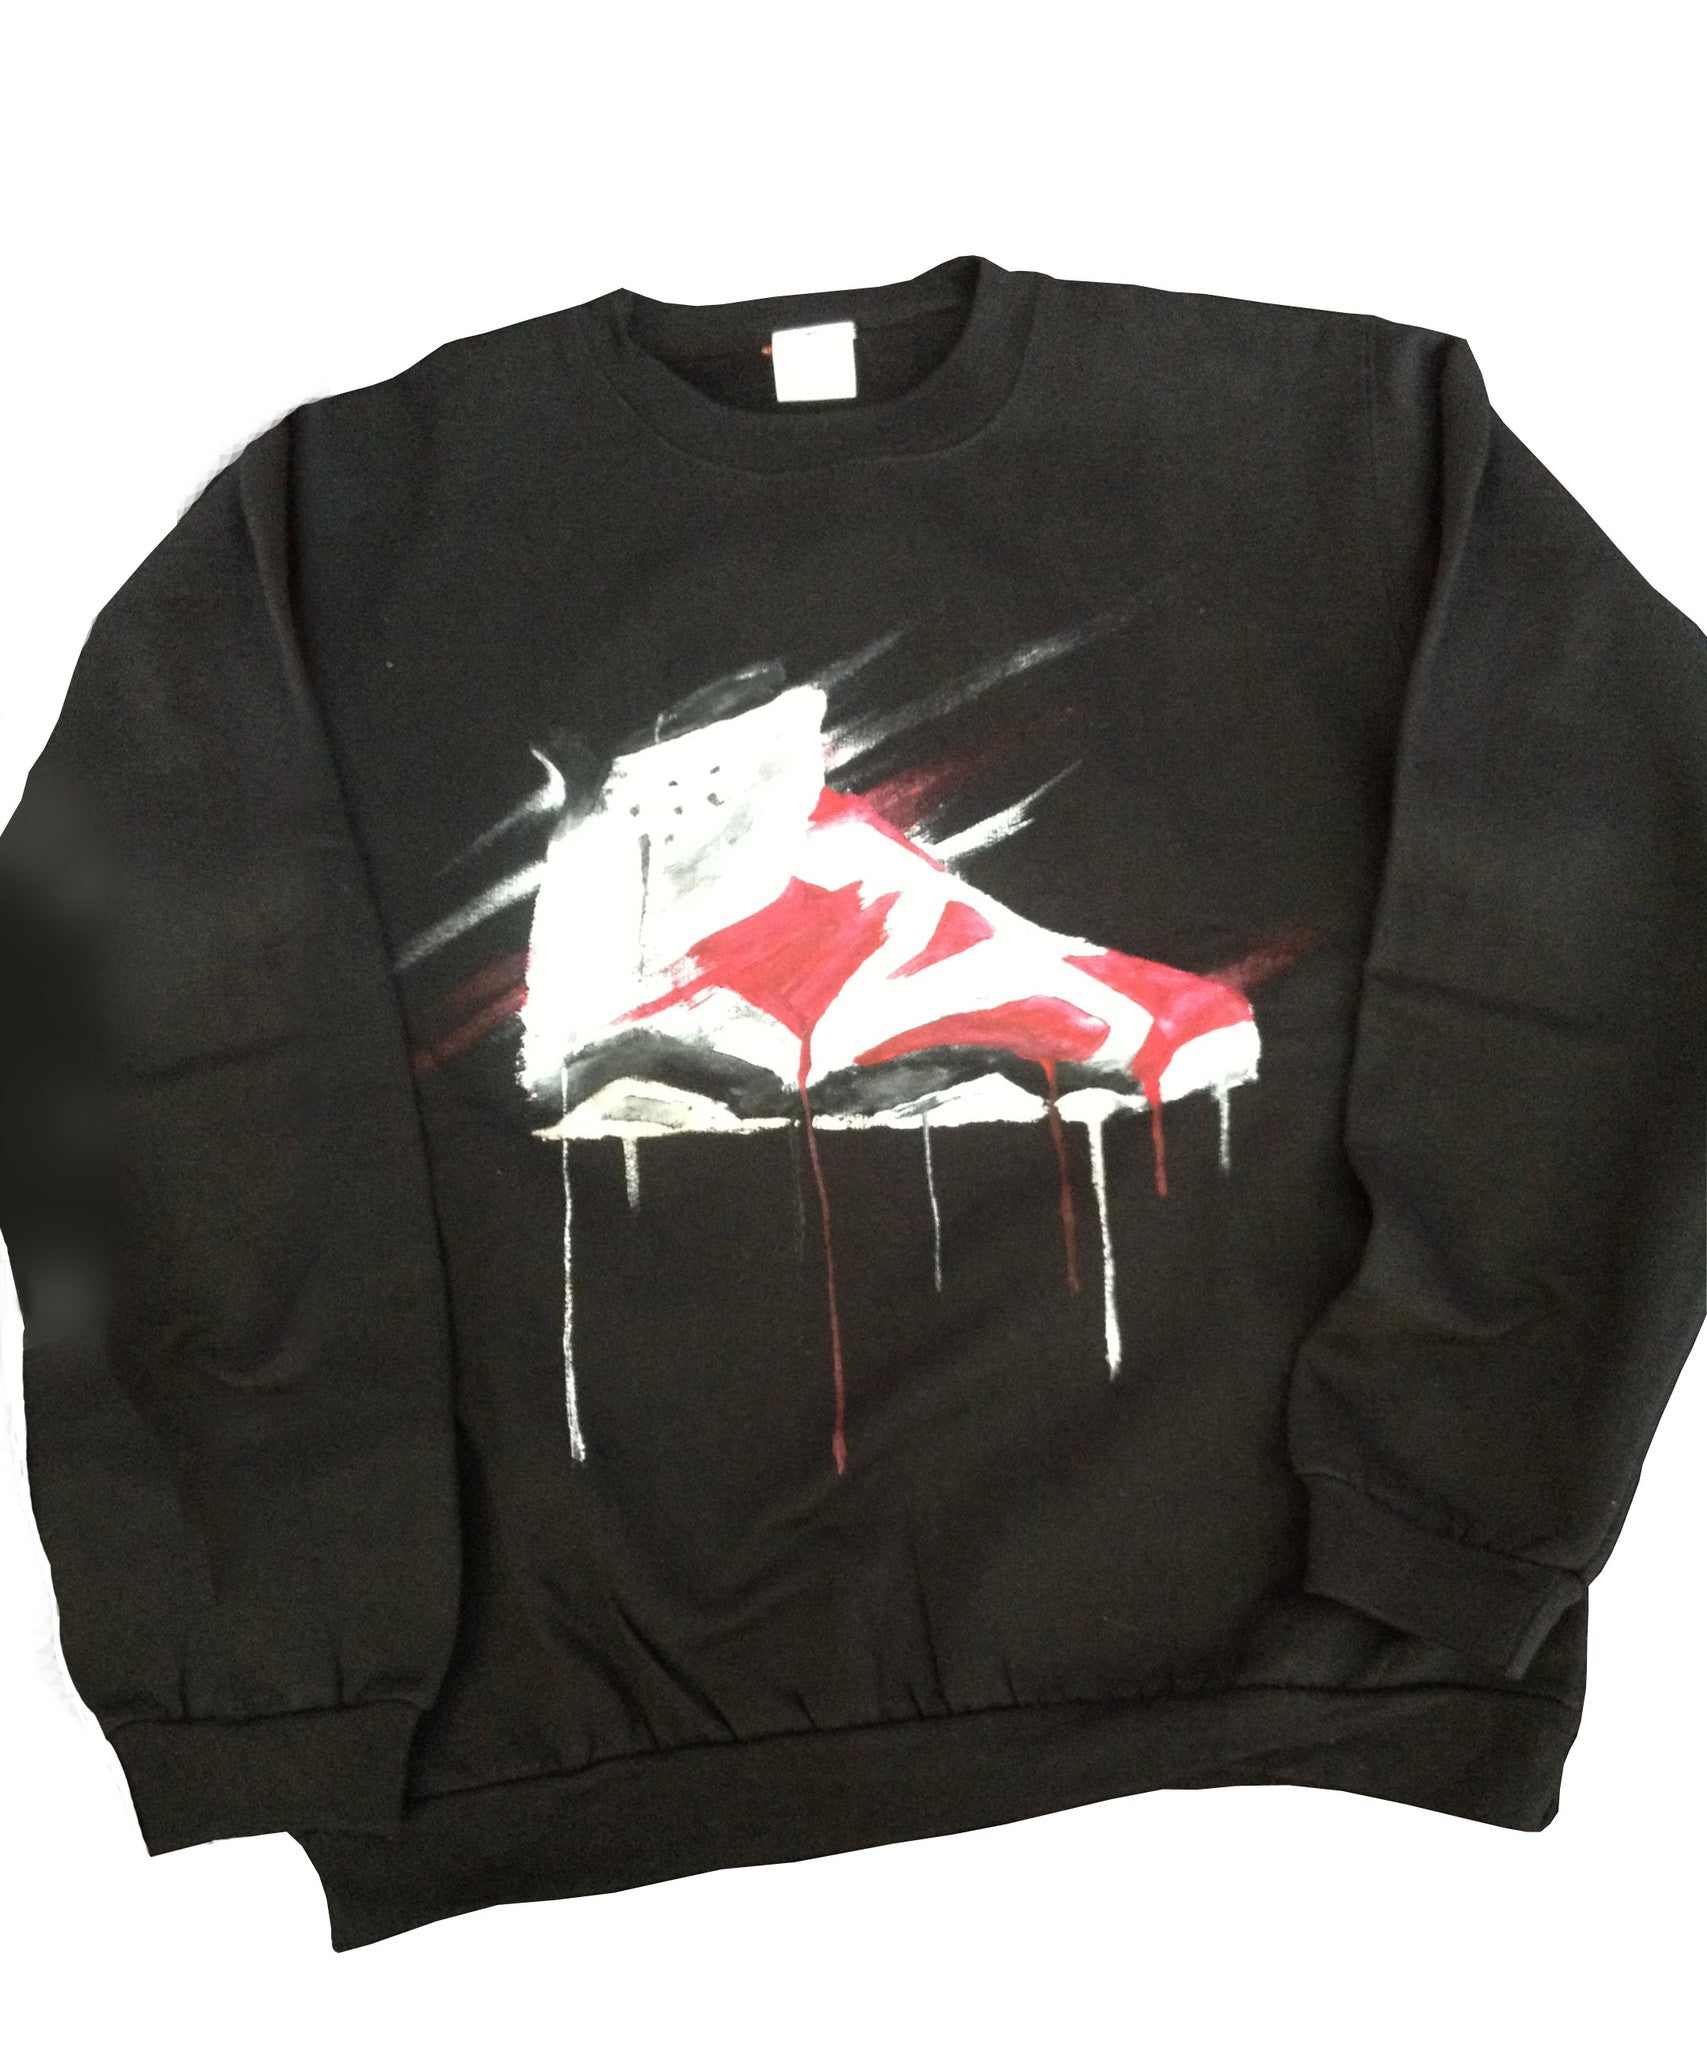 Custom Jordan Carmine 6 Crewneck Sweater - BYN Customs